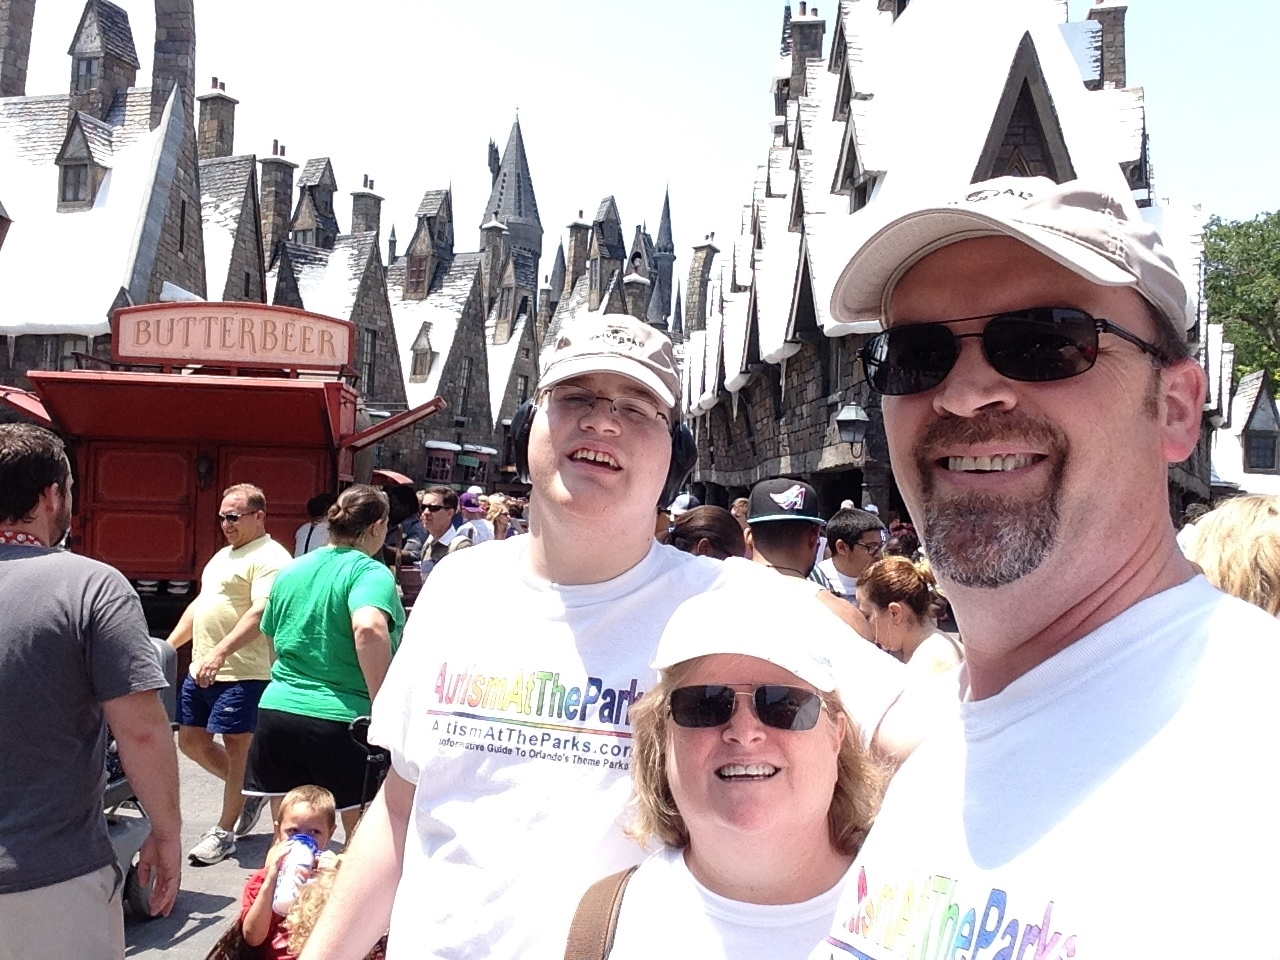 Maureen, Phil, and Zachary in The Wizarding World of Harry Potter - Hogsmeade in Universal Orlando. Copyright AutismAtTheParks.com. All rights reserved.